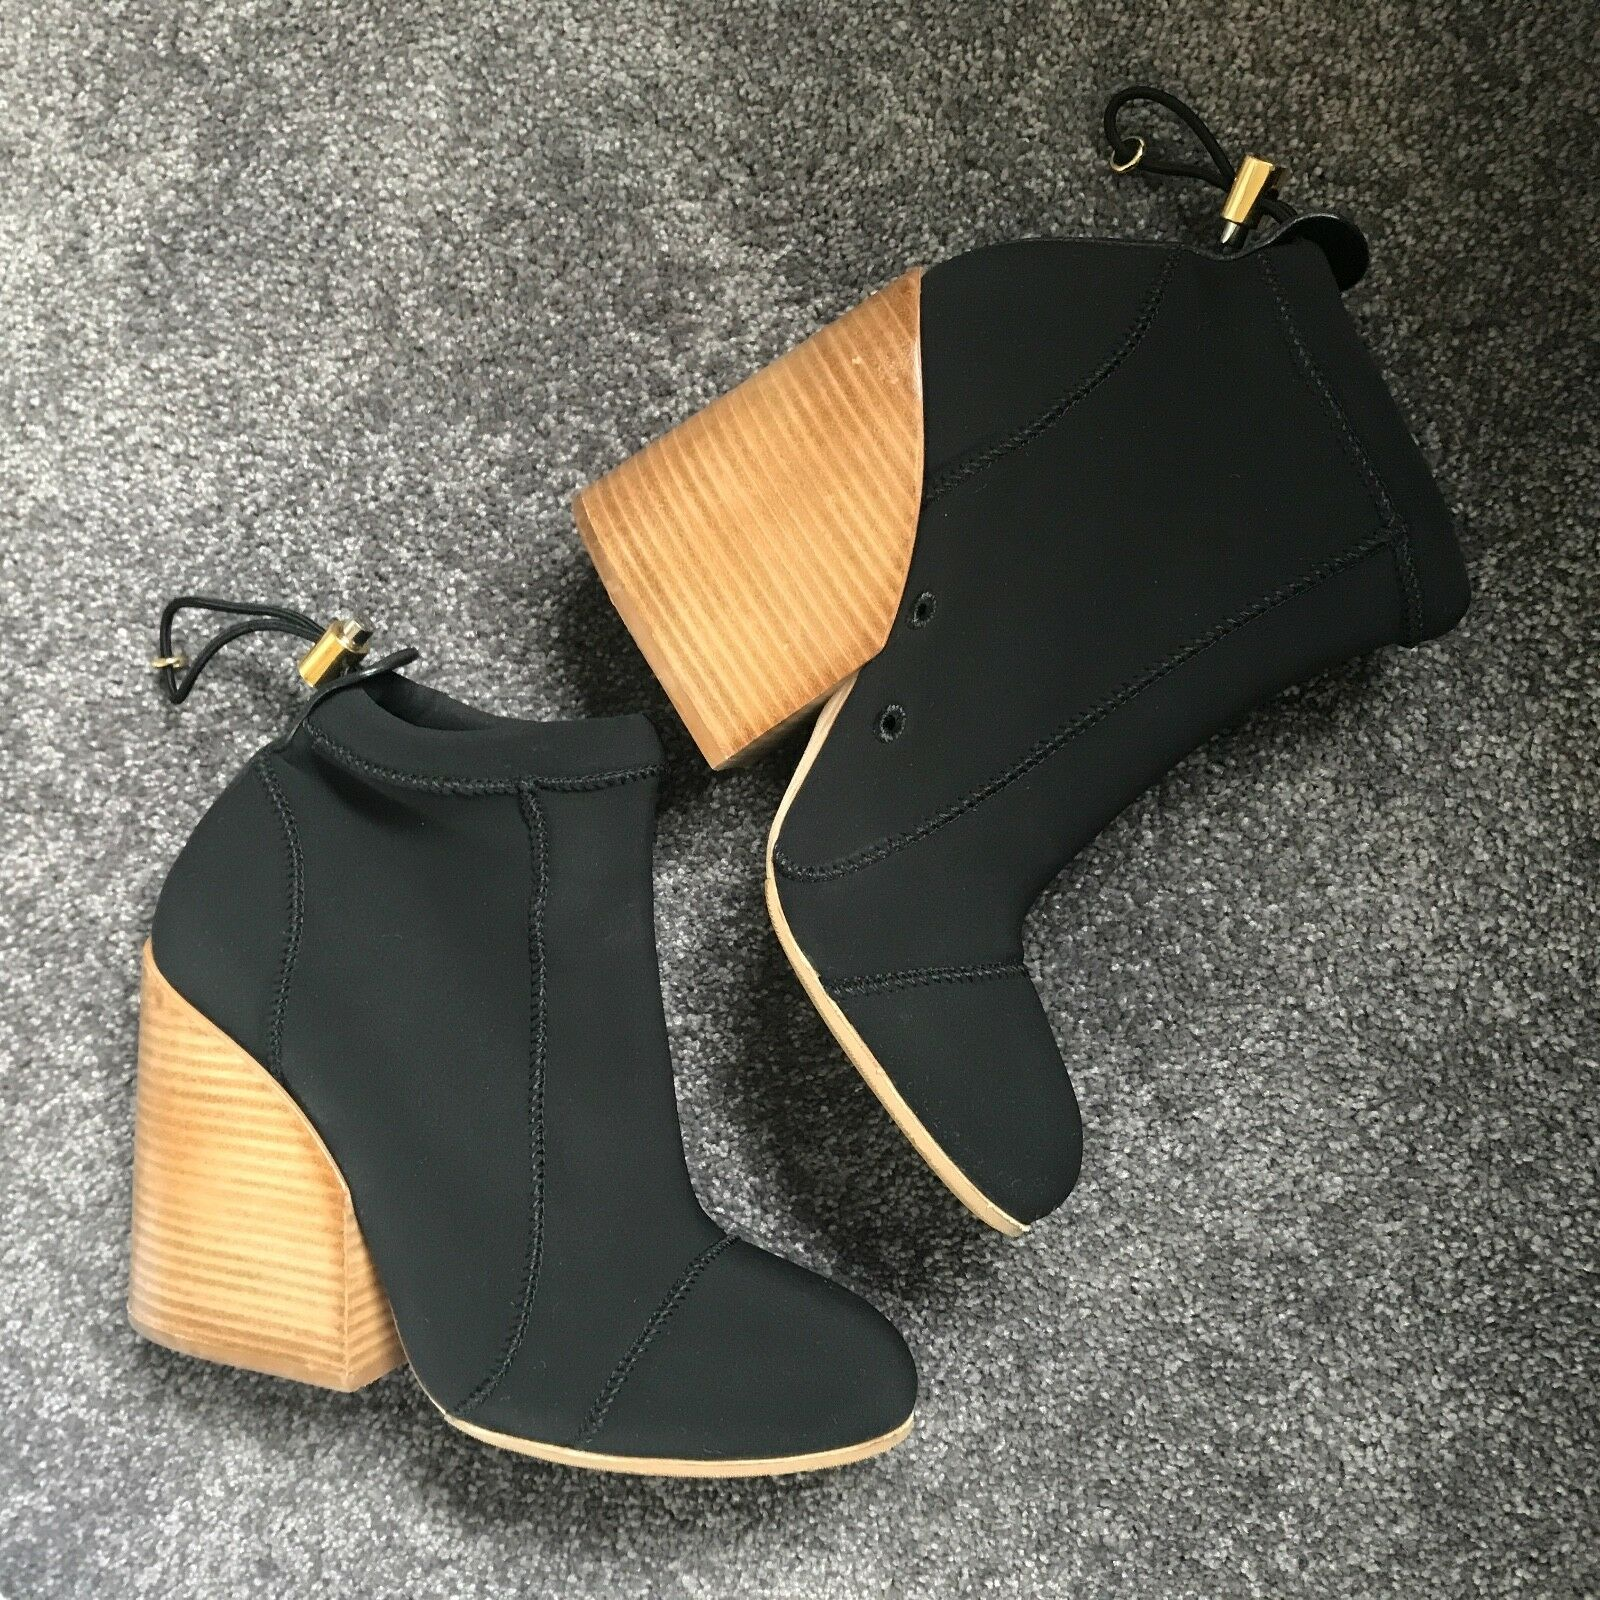 Chloe Neoprene Bungee Ankle Boots Boots Boots with Wooden Stacked Heel 41 72f201